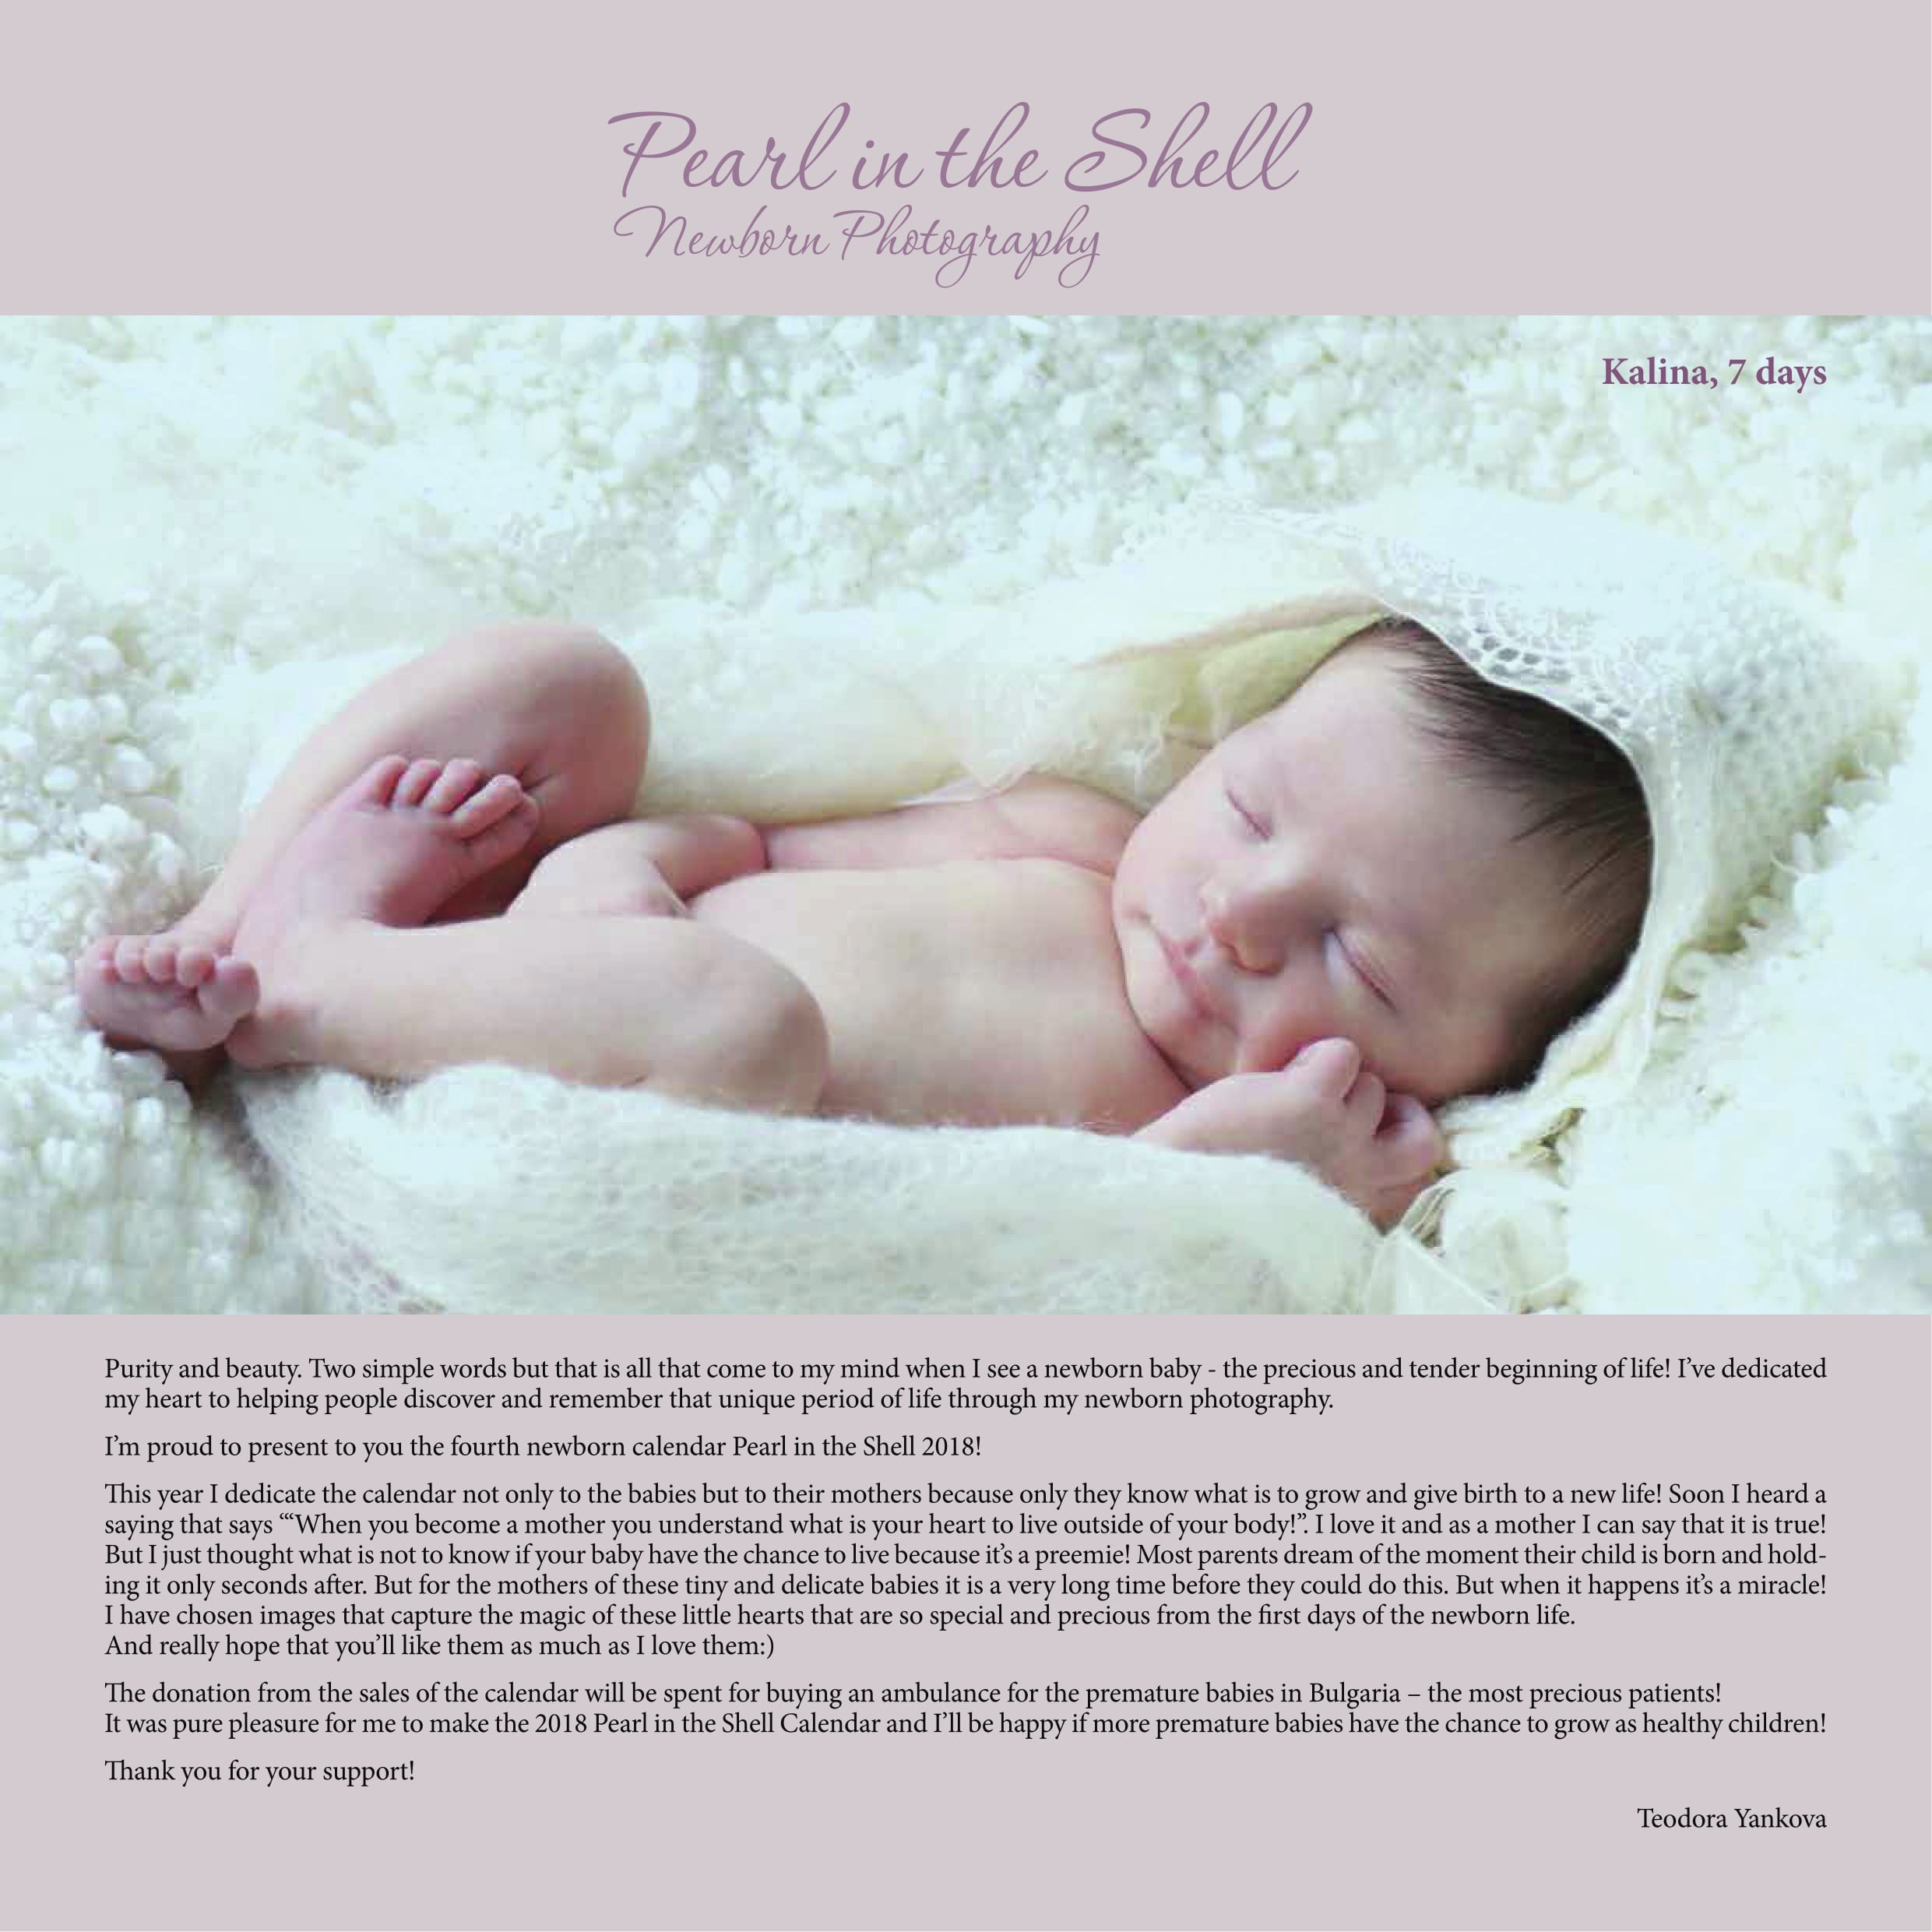 Pearl_in_the_Shell_Calendar_2018-03